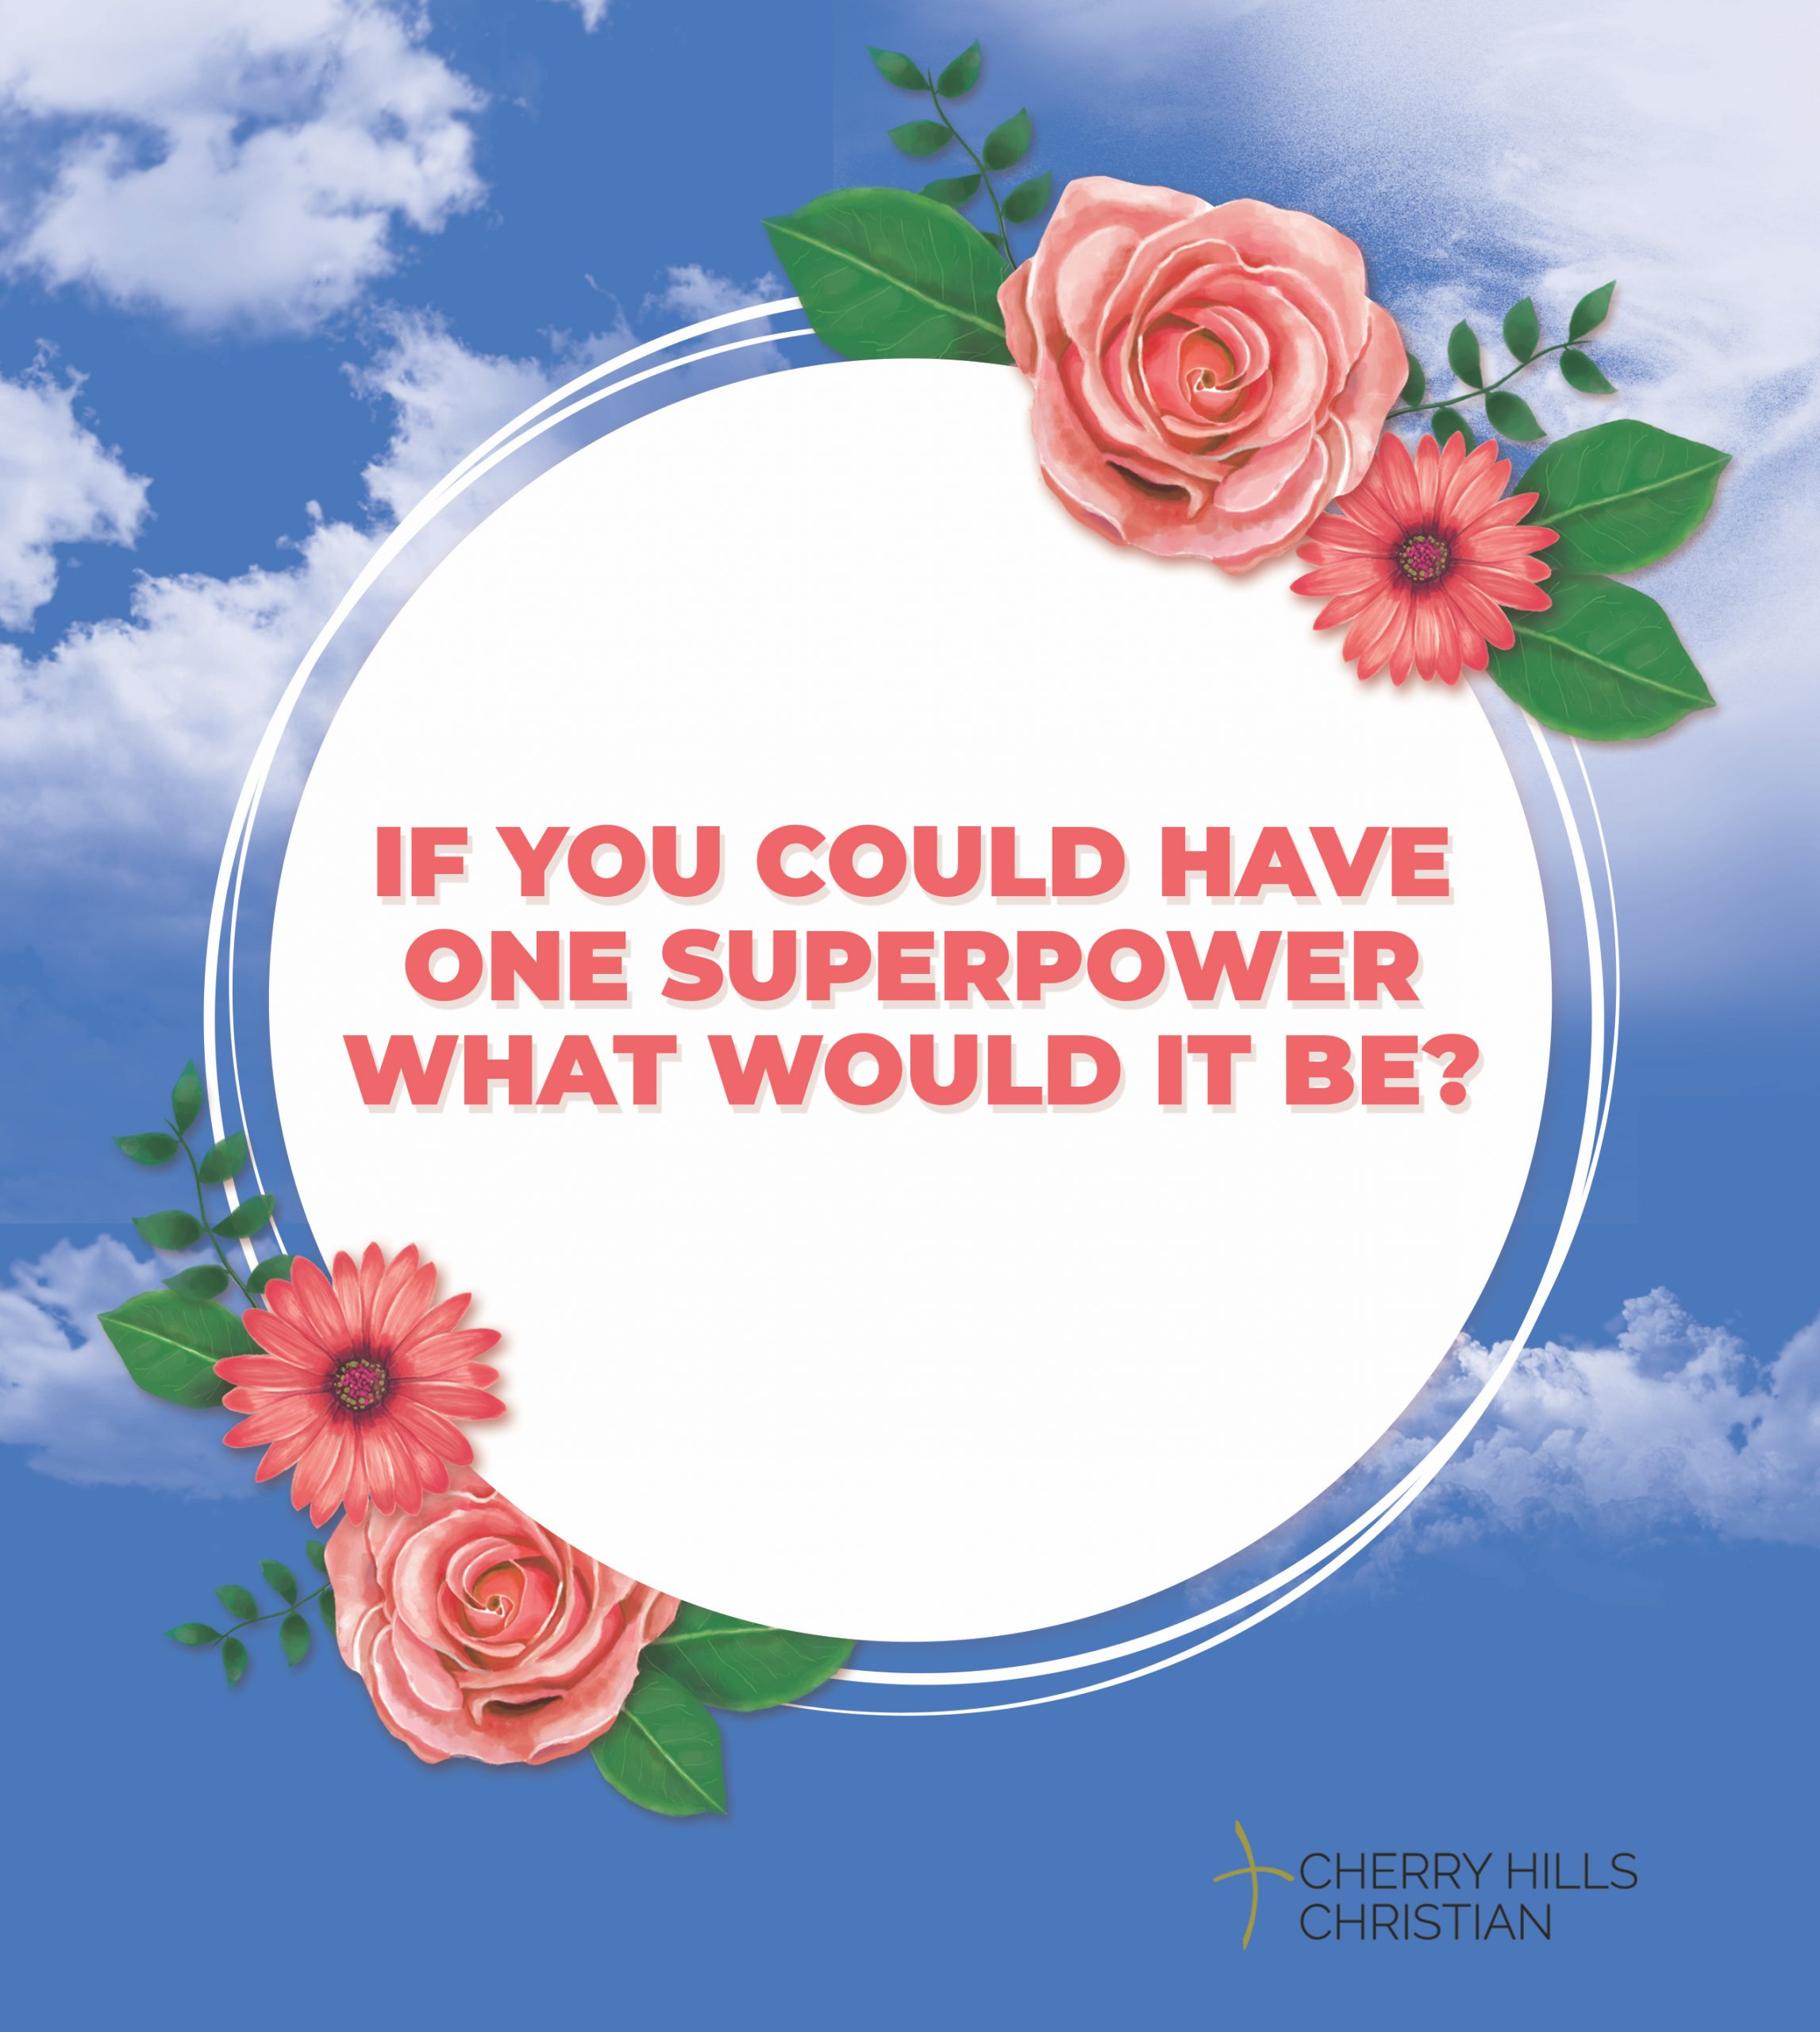 One superpower you want?